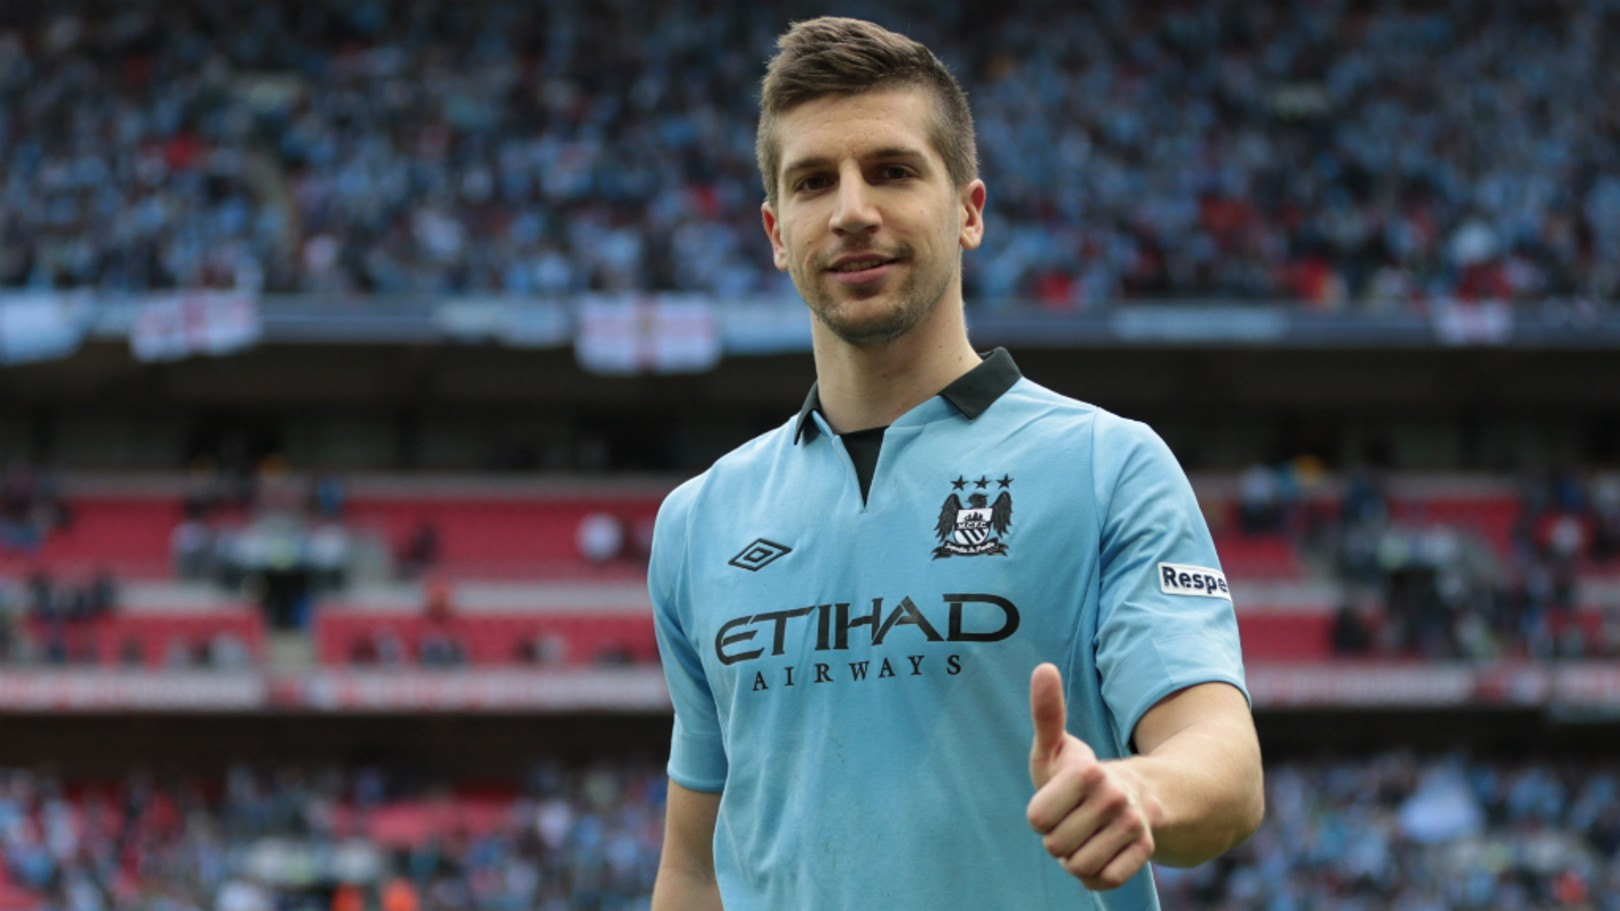 FOND MEMORIES: Matija Nastasic will face his former club when City lock horns with Schalke in the Champions League last 16